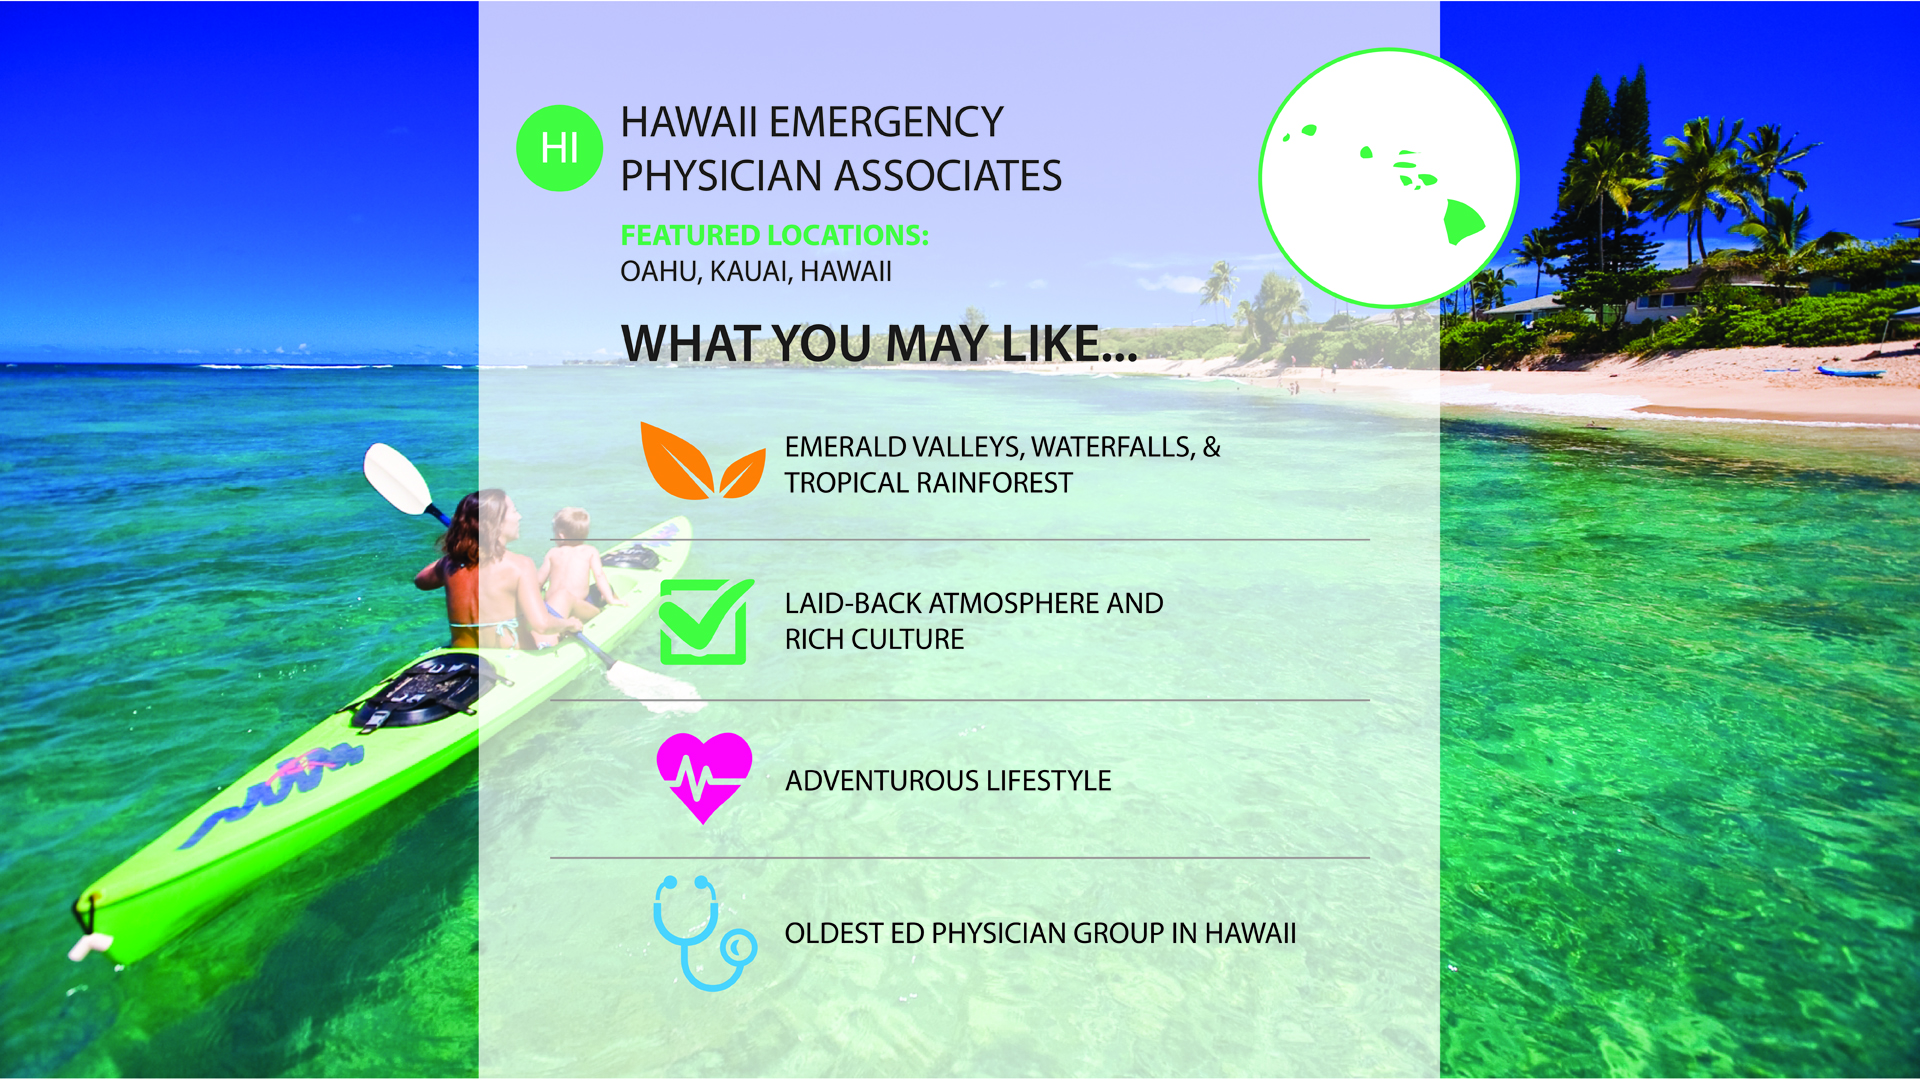 Hawaii Emergency Physicians Associated job in hawaii